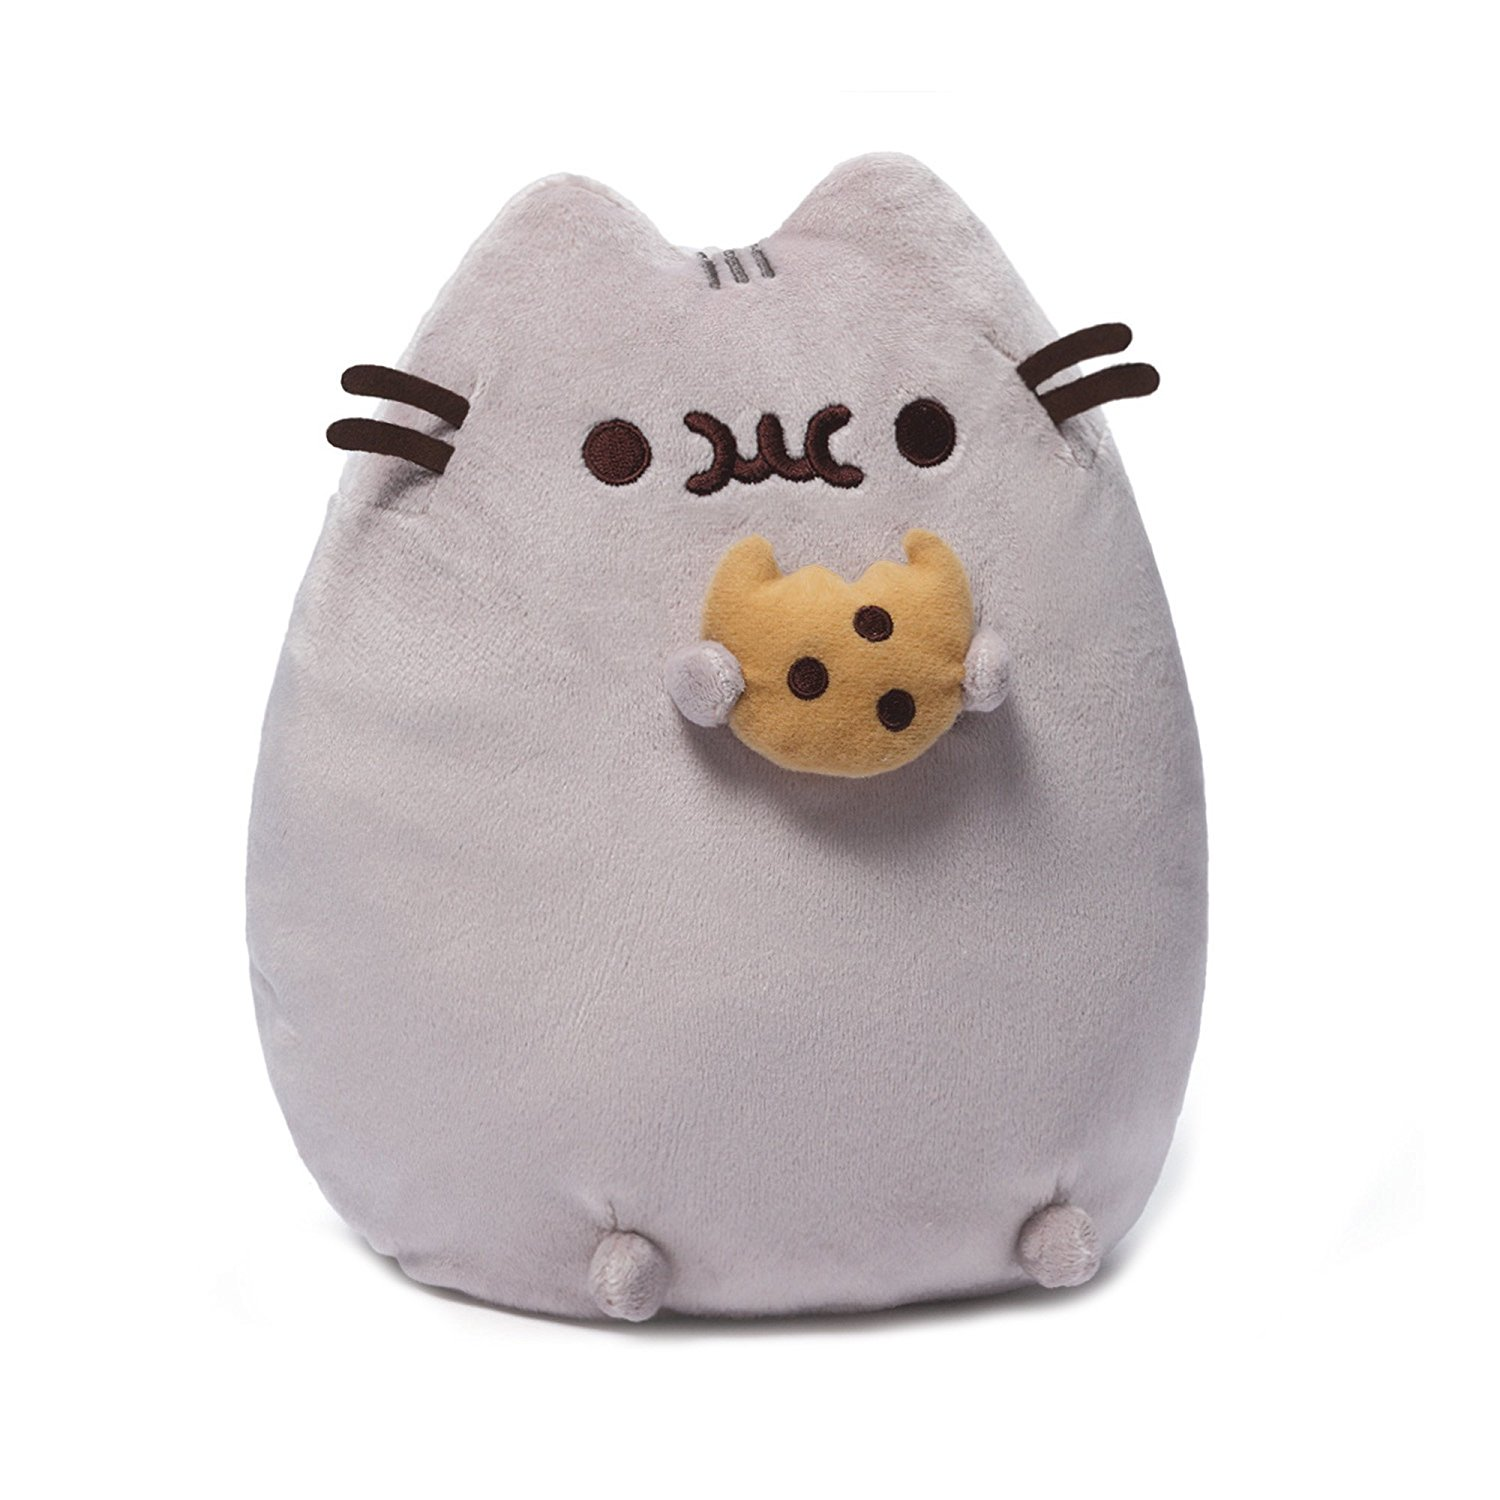 GUND Pusheen the Cat with Cookie Plush